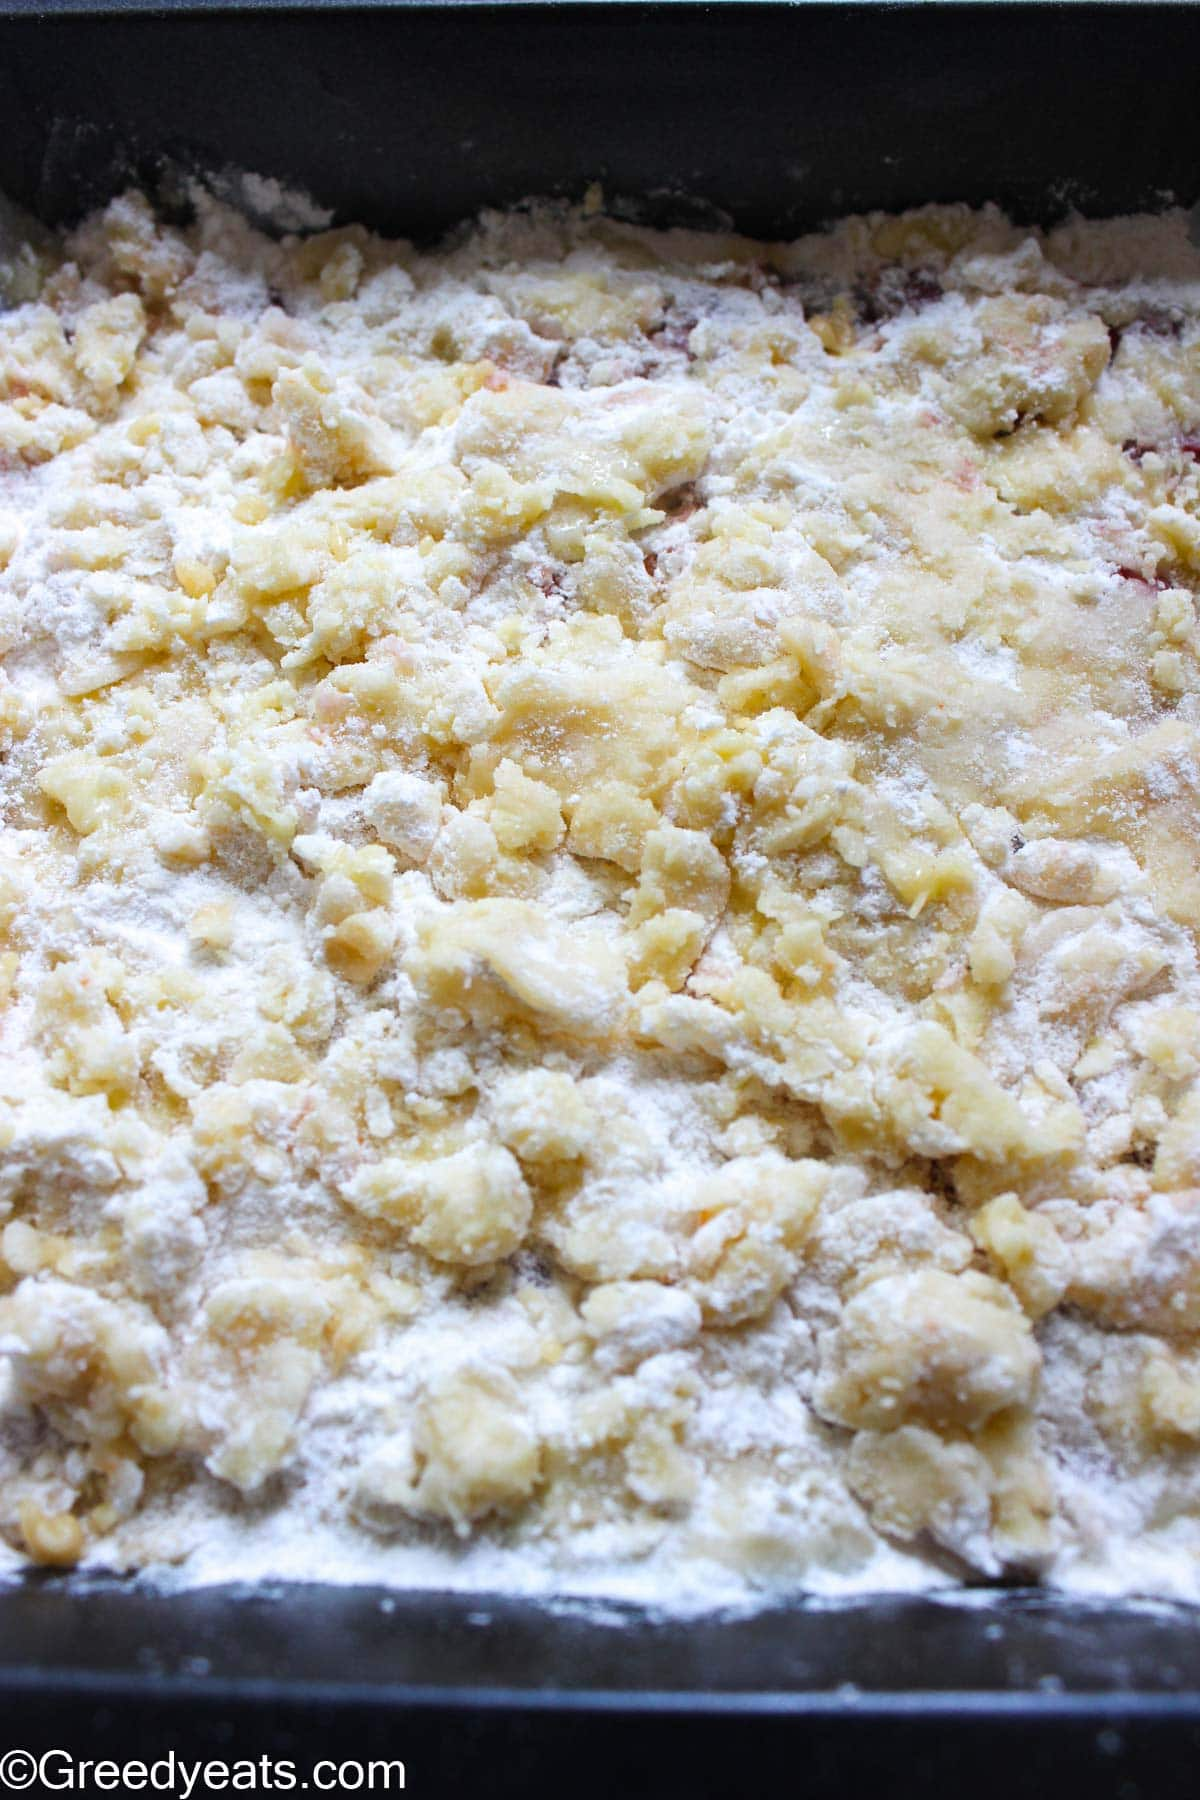 Unbaked cake crumbs, mixed with melted butter in a baking pan.